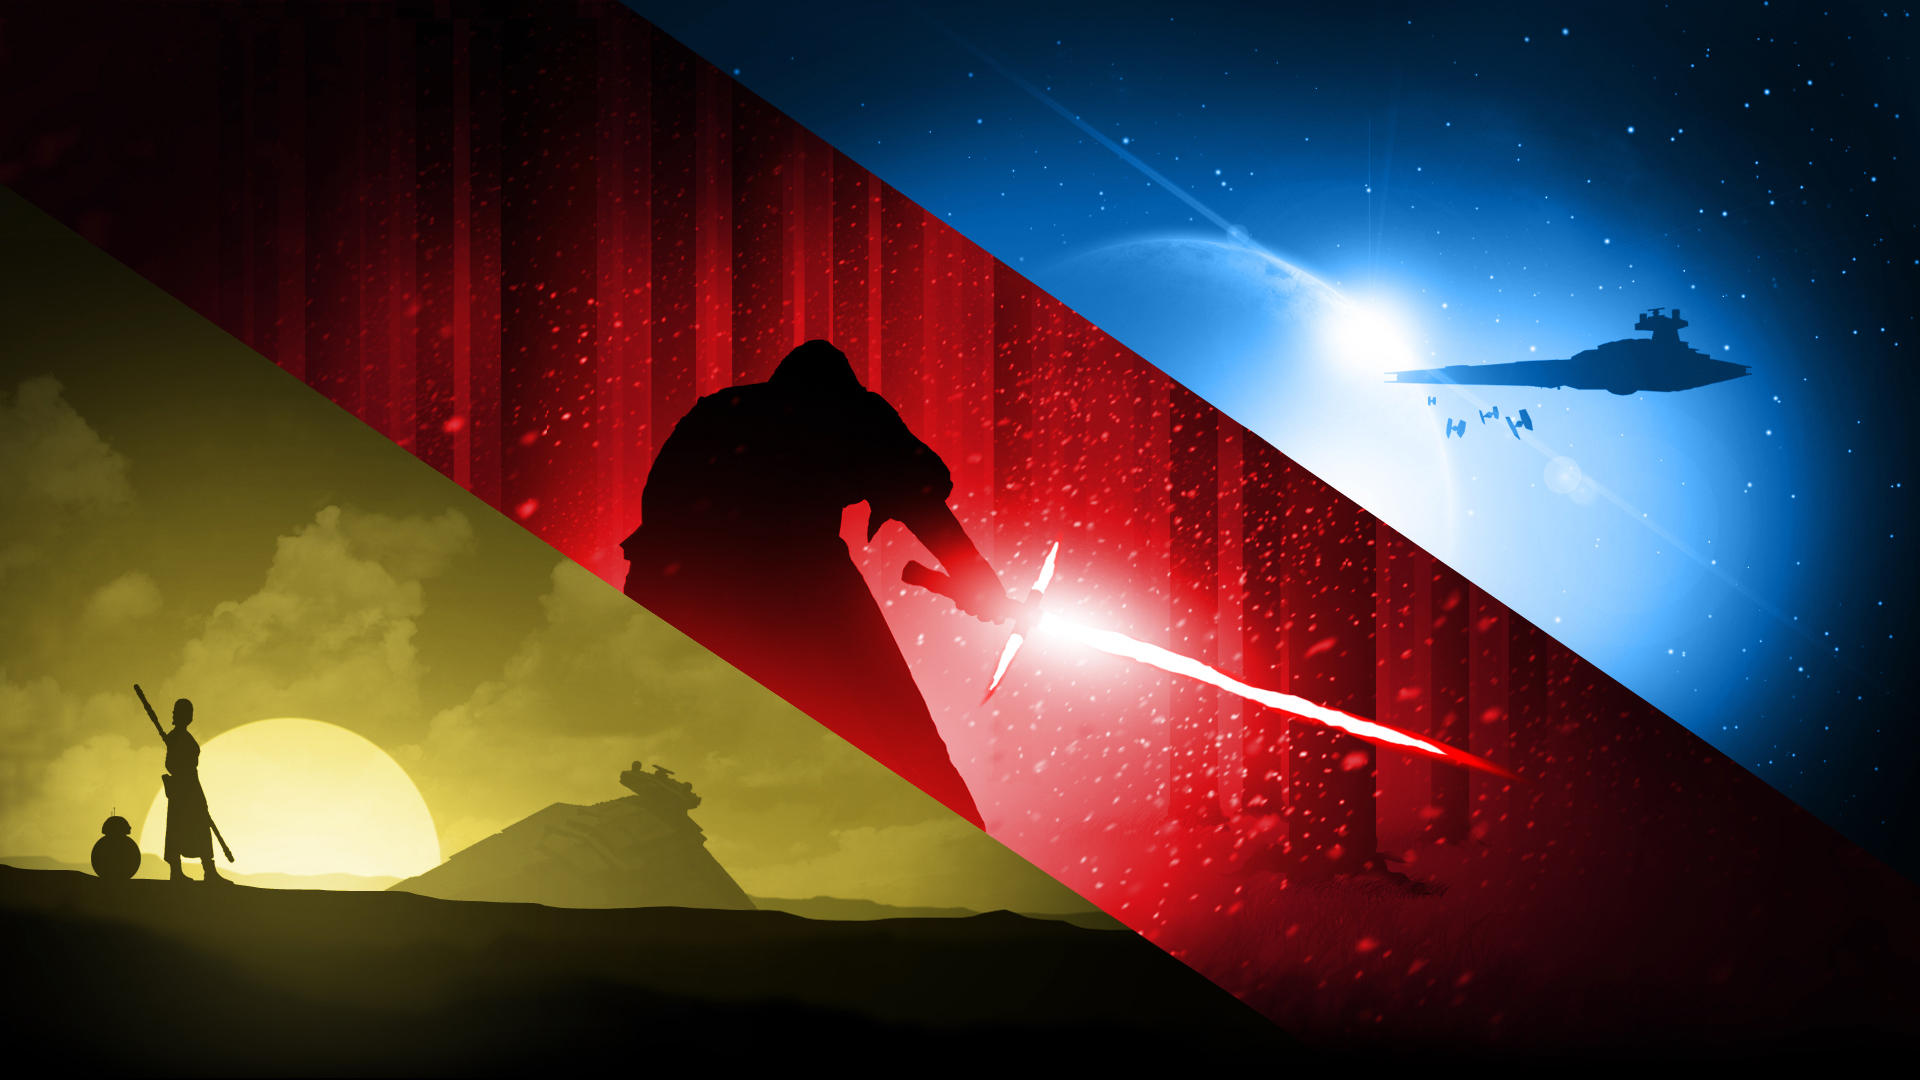 Star Wars: The Force Awakens - Wallpaper (No logo) by RockLou